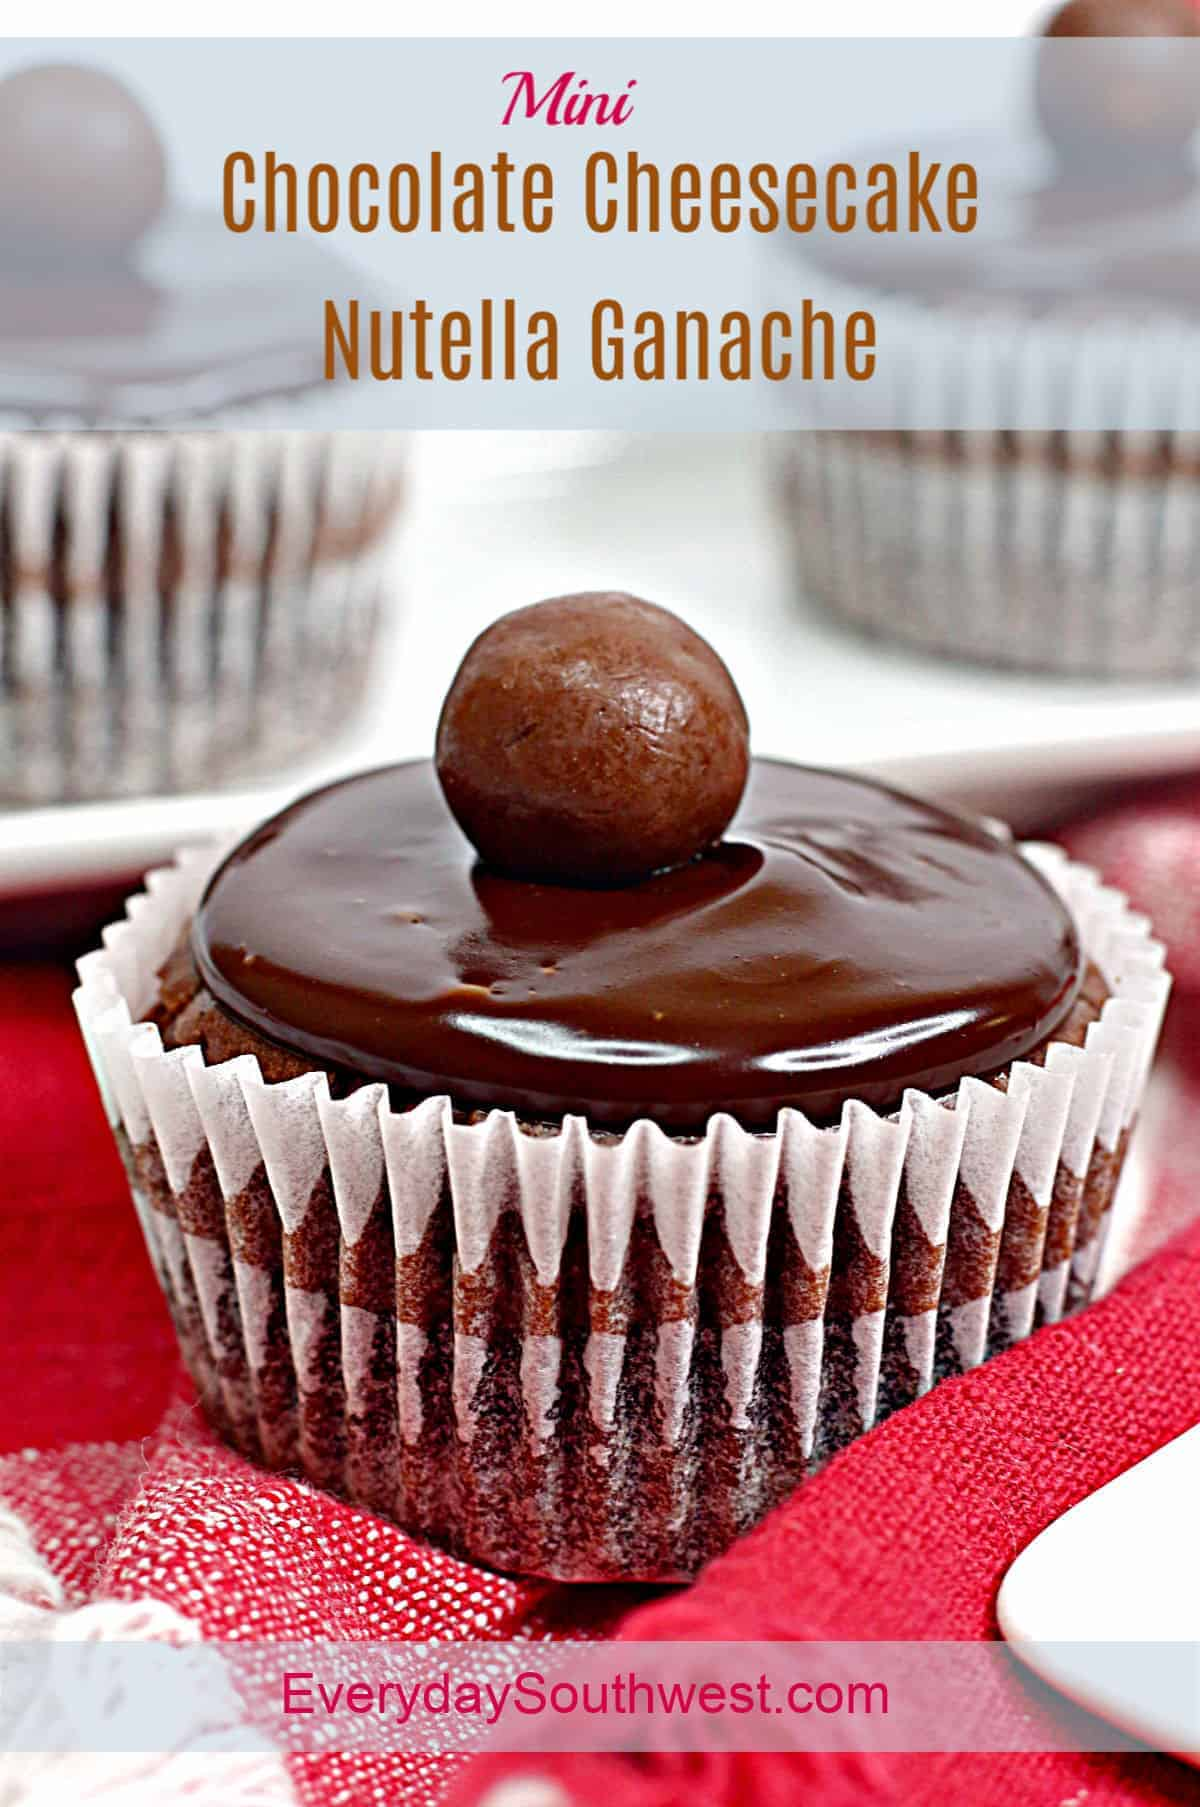 Mini Chocolate Cheesecakes with Nutella Ganache and Chocolate Cookie Crust